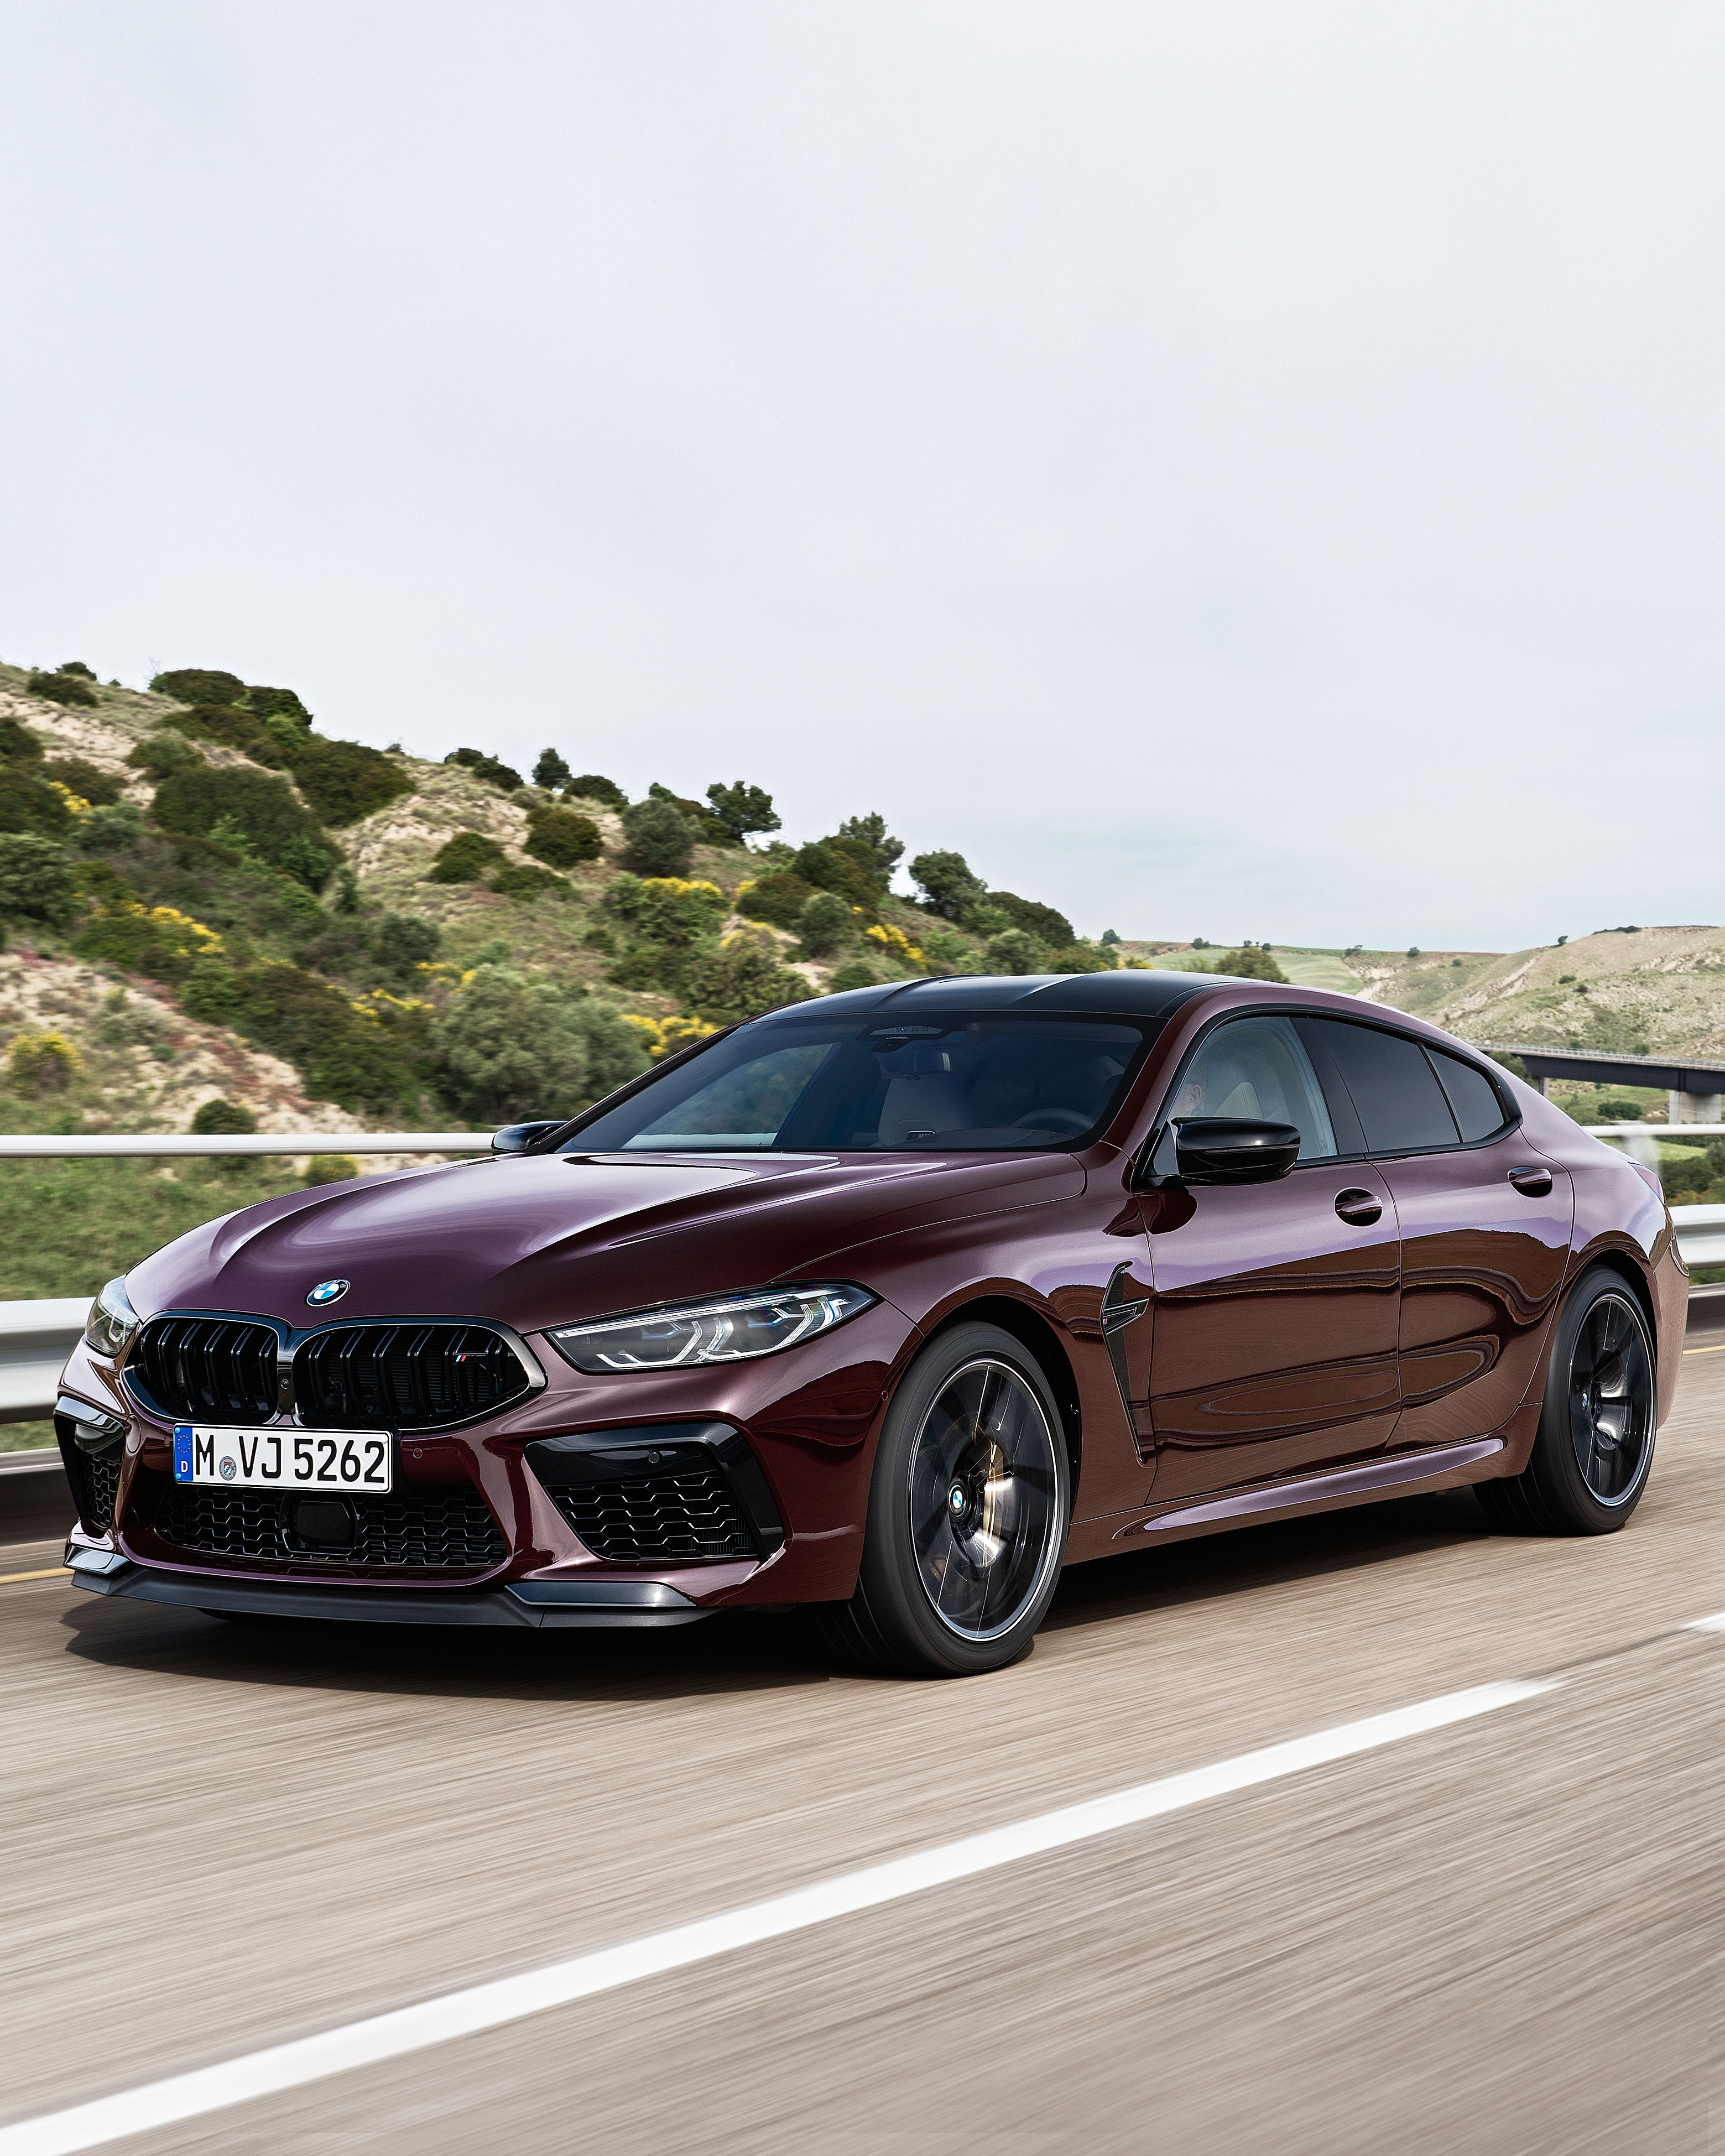 2020 Bmw M8 Gran Coupe Arrives With Four Doors And Up To 617 Hp